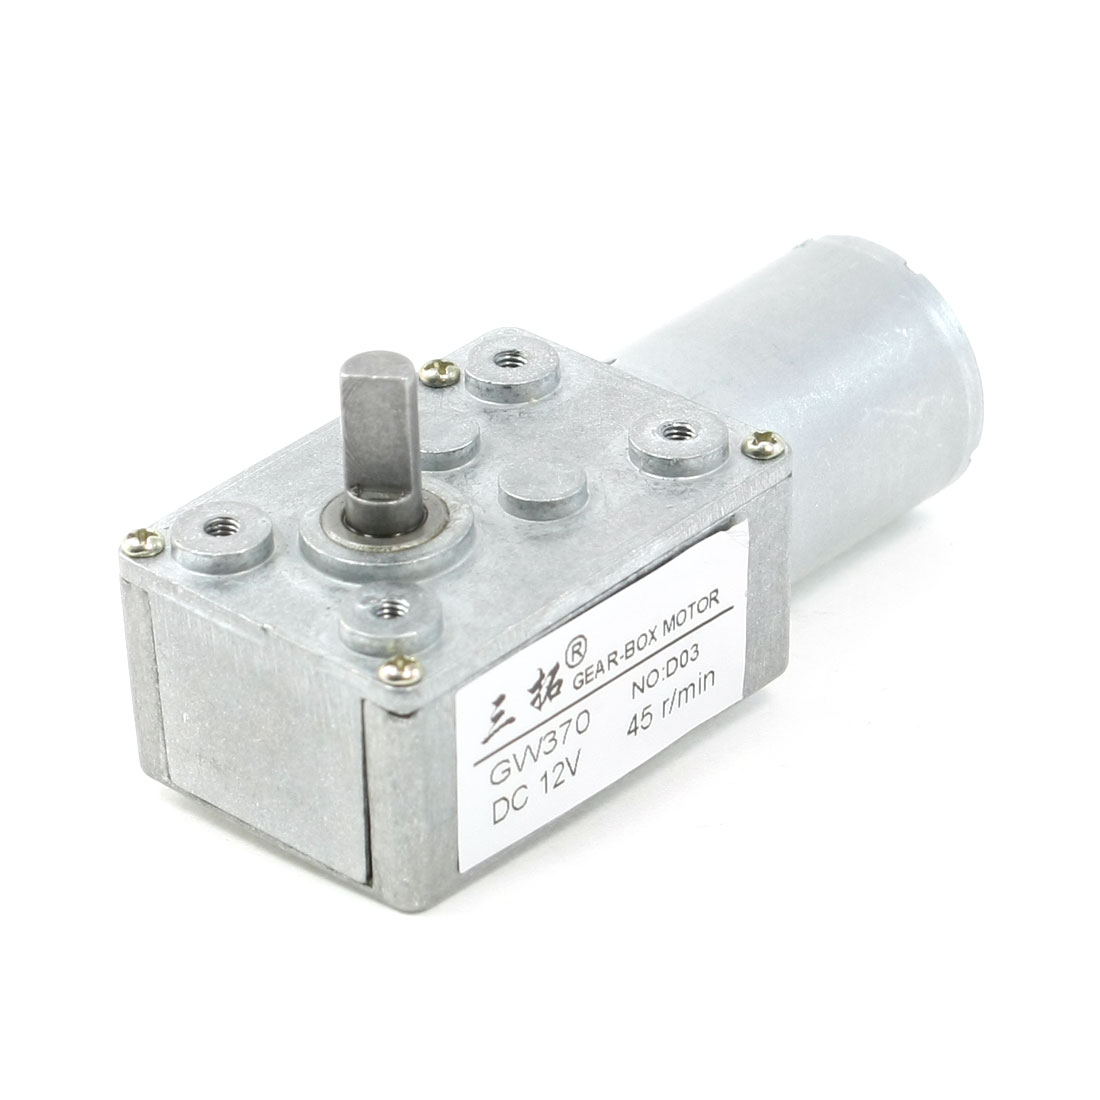 6mm-Shaft-Rectangle-Gear-Box-2-Terminals-Electric-Geared-Motor-DC-12V-45RPM